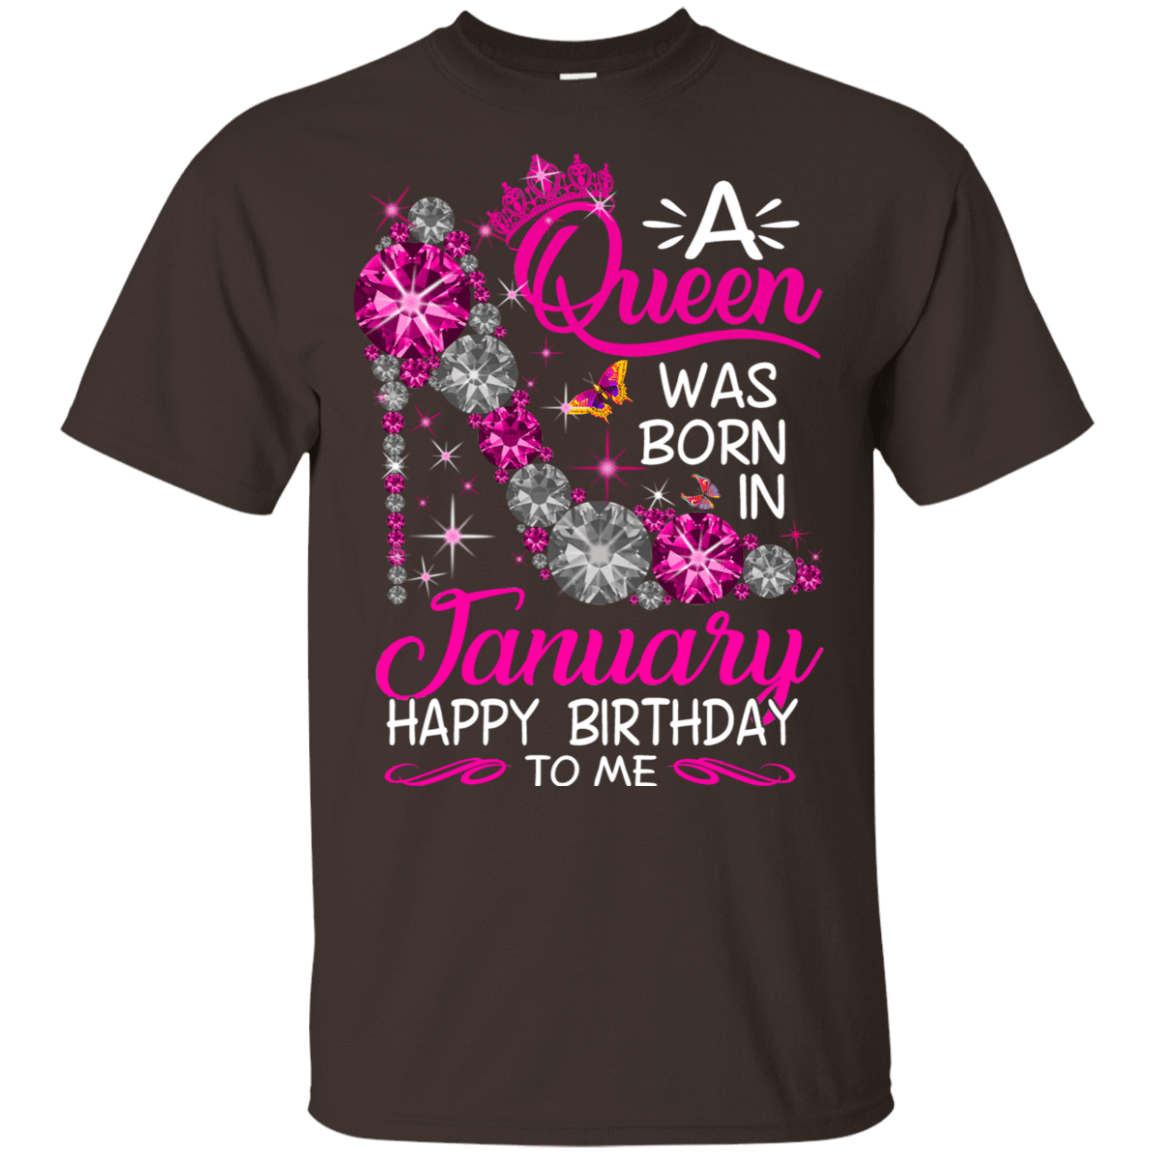 A Queen Was Born In January Happy Birthday To Me T-Shirts & Hoodies 22-2283-76451801-12087 - Tee Ript